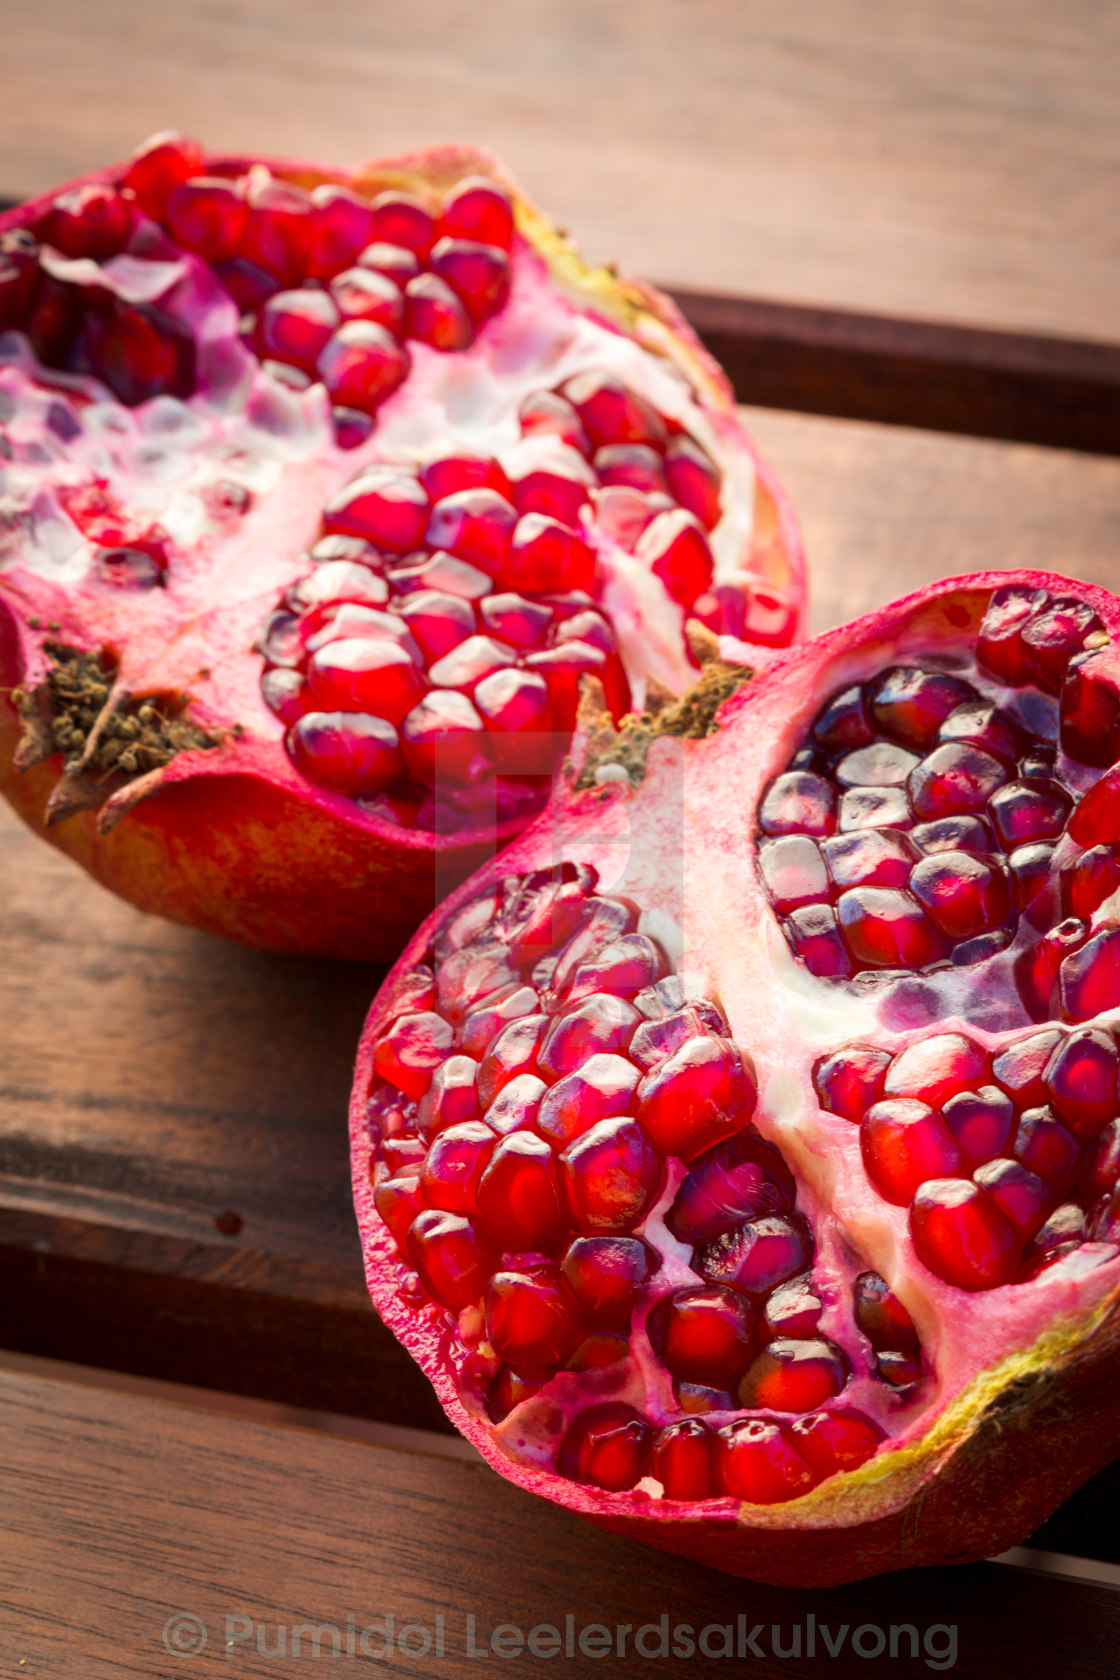 """Red juicy pomegranate fruit on wooden table"" stock image"